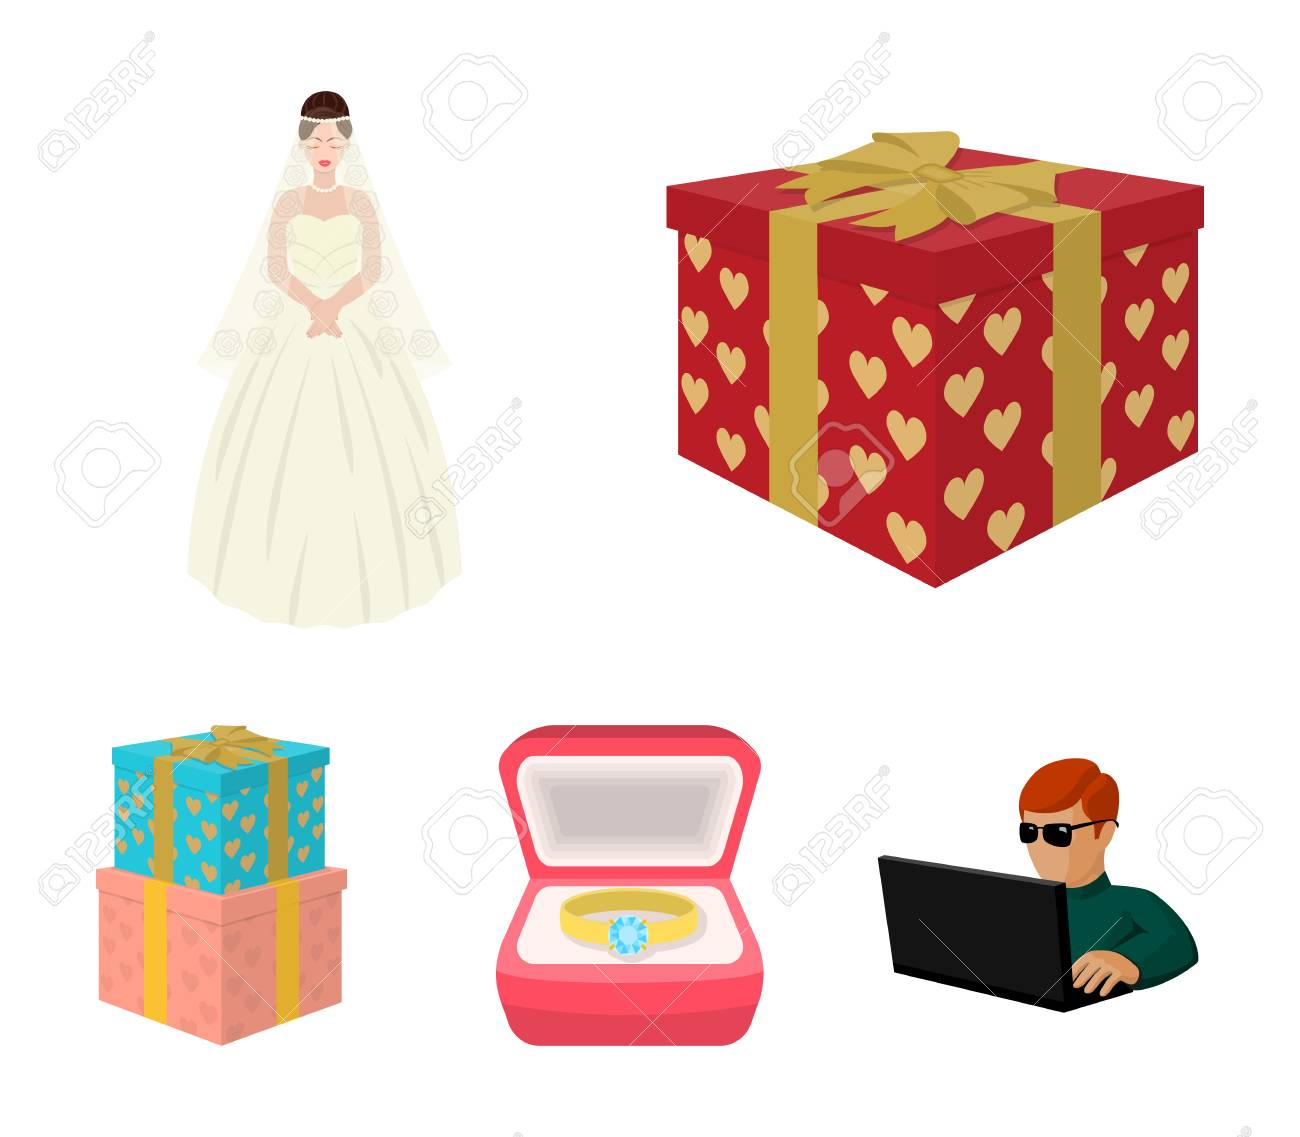 Wedding Set Collection Icons In Cartoon Style With Wedding Gifts